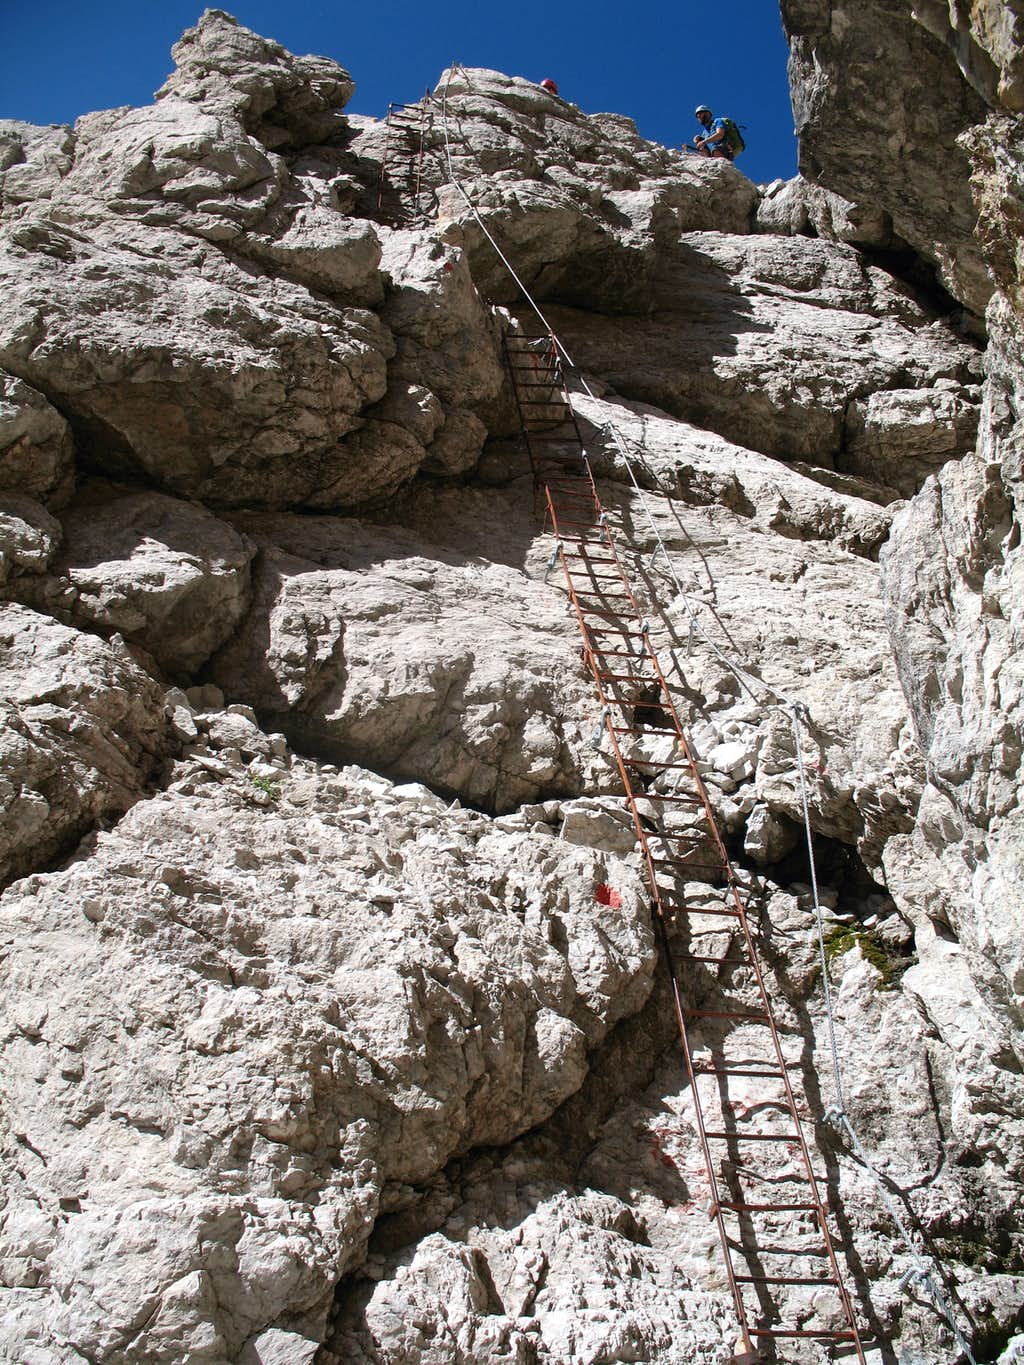 Alfredo Benini ferrata. Ladders on the south face of Cima Sella